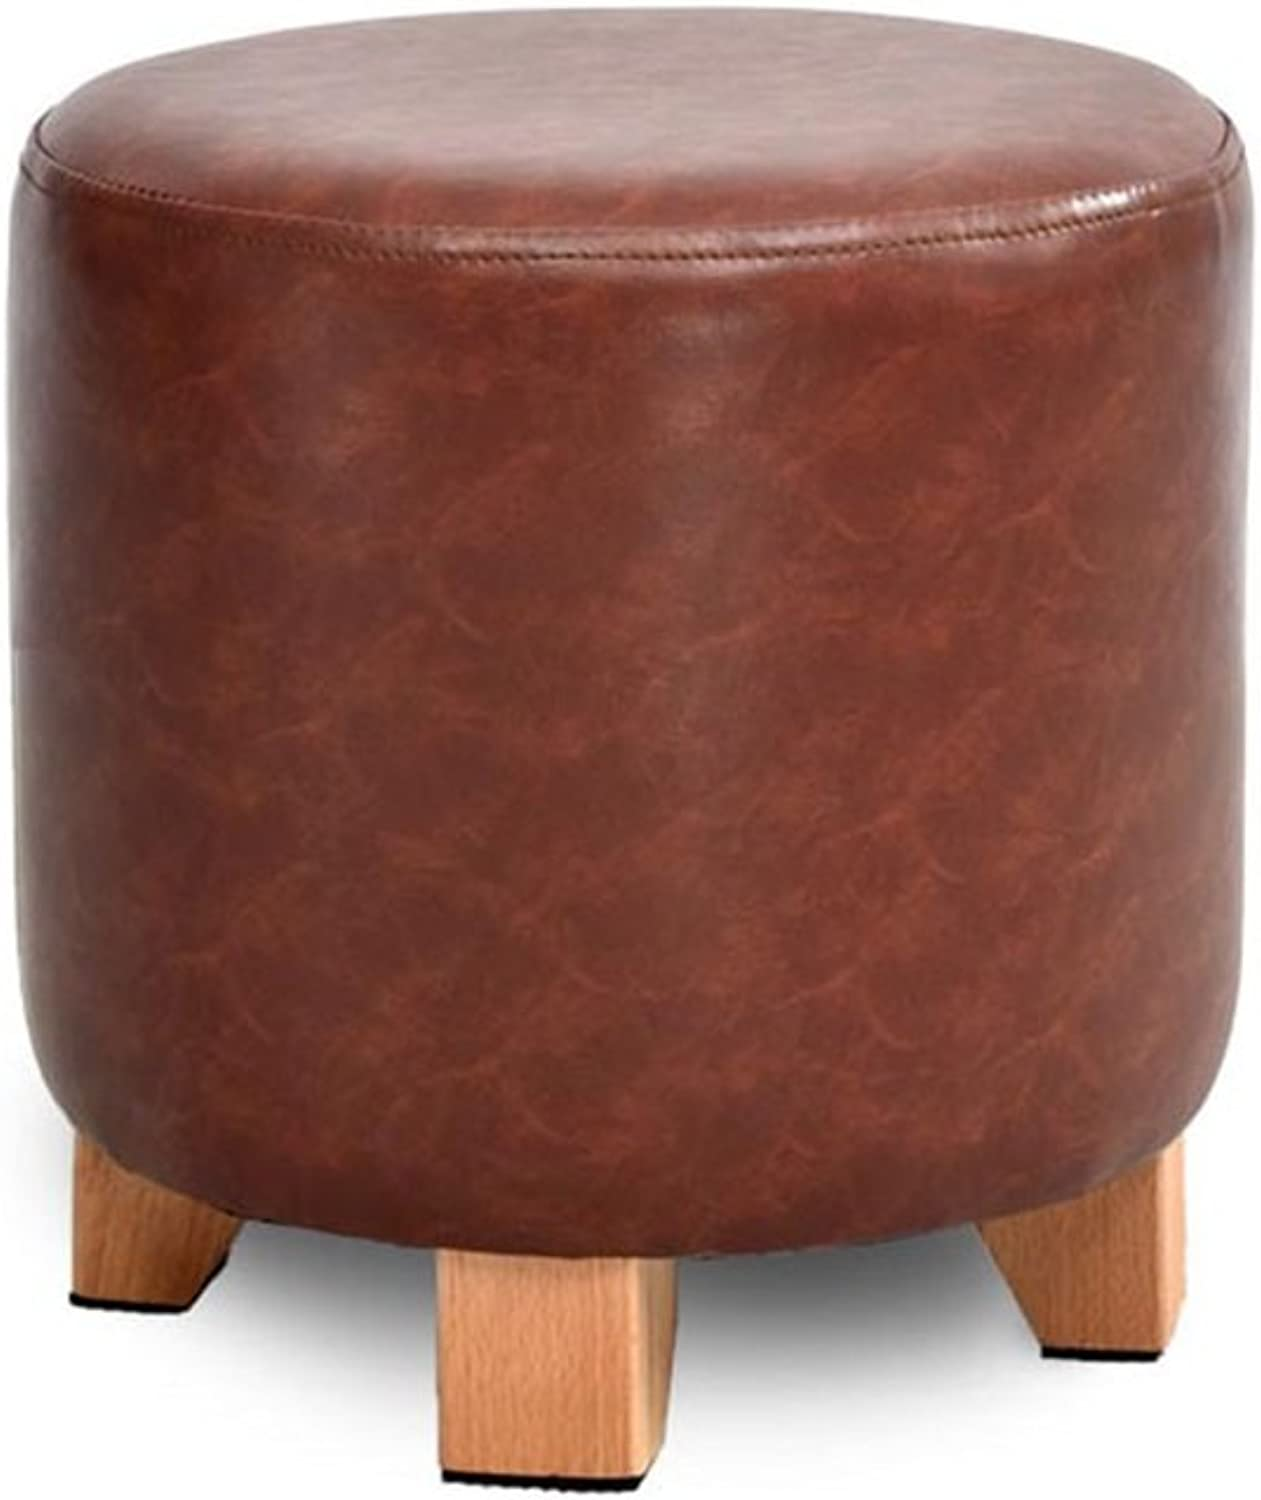 BJLWTQ Solid Wood shoes Stool Upholstered Footstool Footrest Leather Dressing Stool Makeup Stool Dining Chair Small Seat Foot Rest Chair (color   RED, Size   29  30cm)